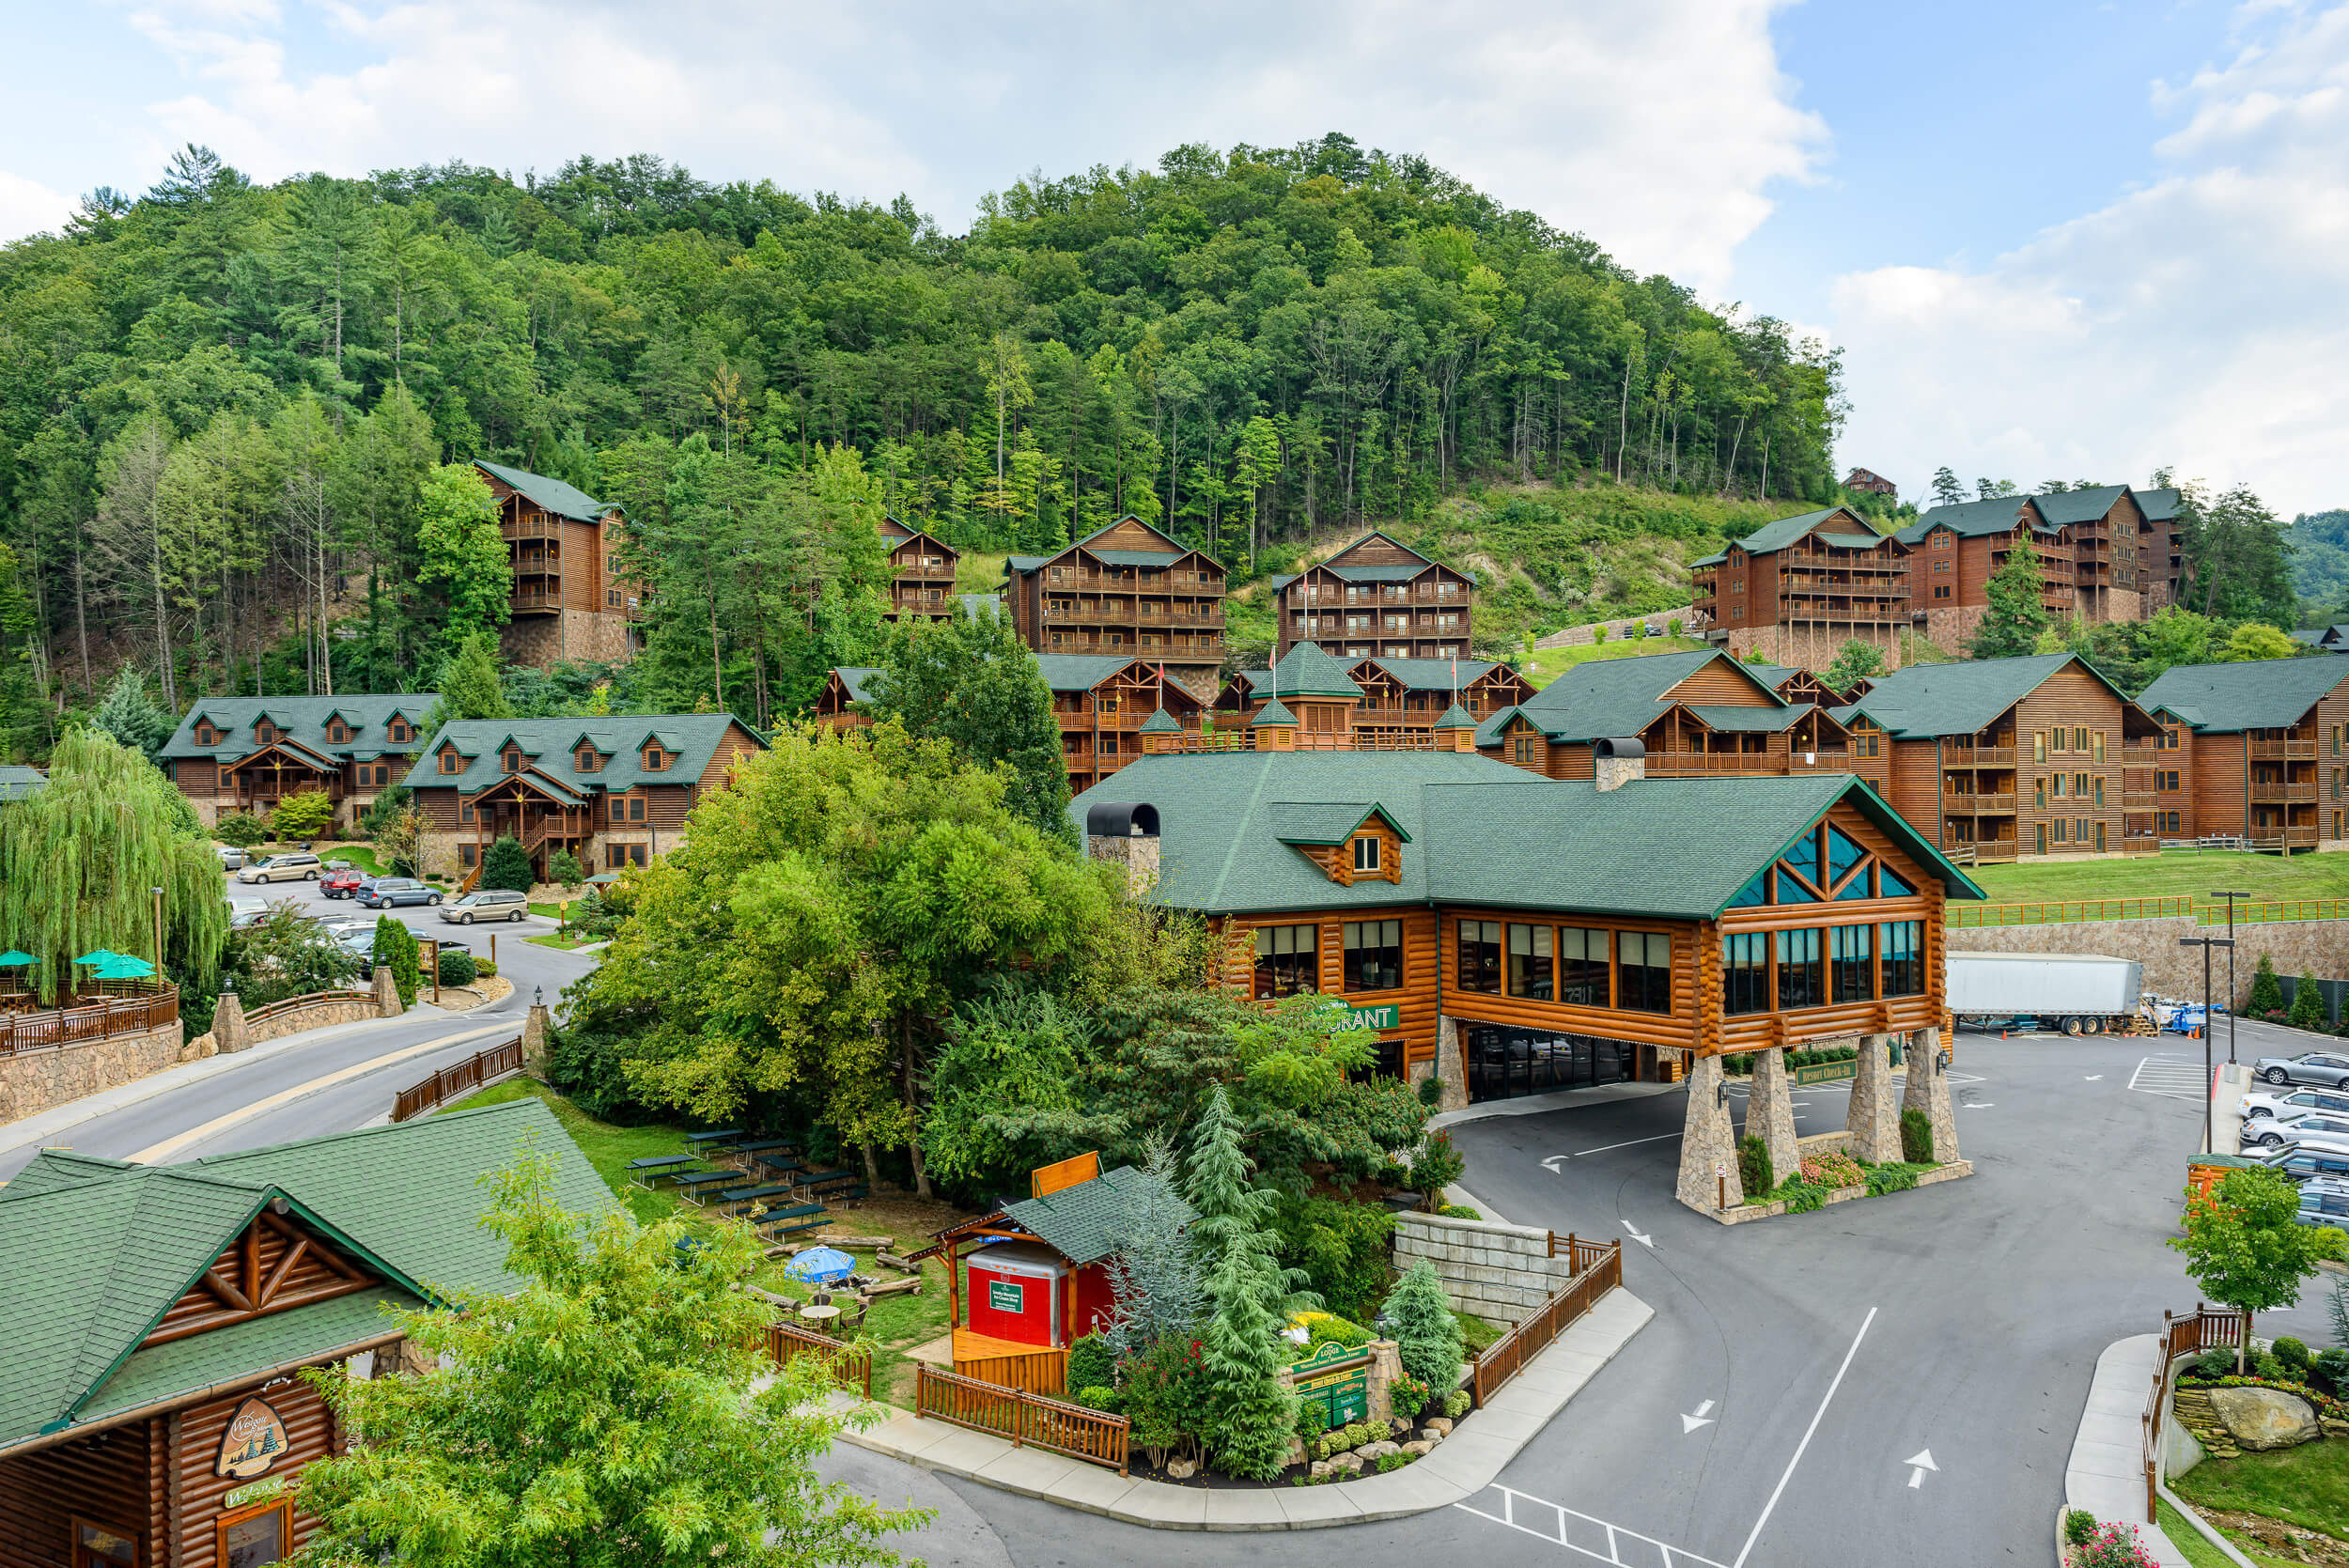 Corporate Retreat & Event Resort in the Smoky Mountains | Westgate Smoky Mountain Resort & Spa | Westgate Resorts